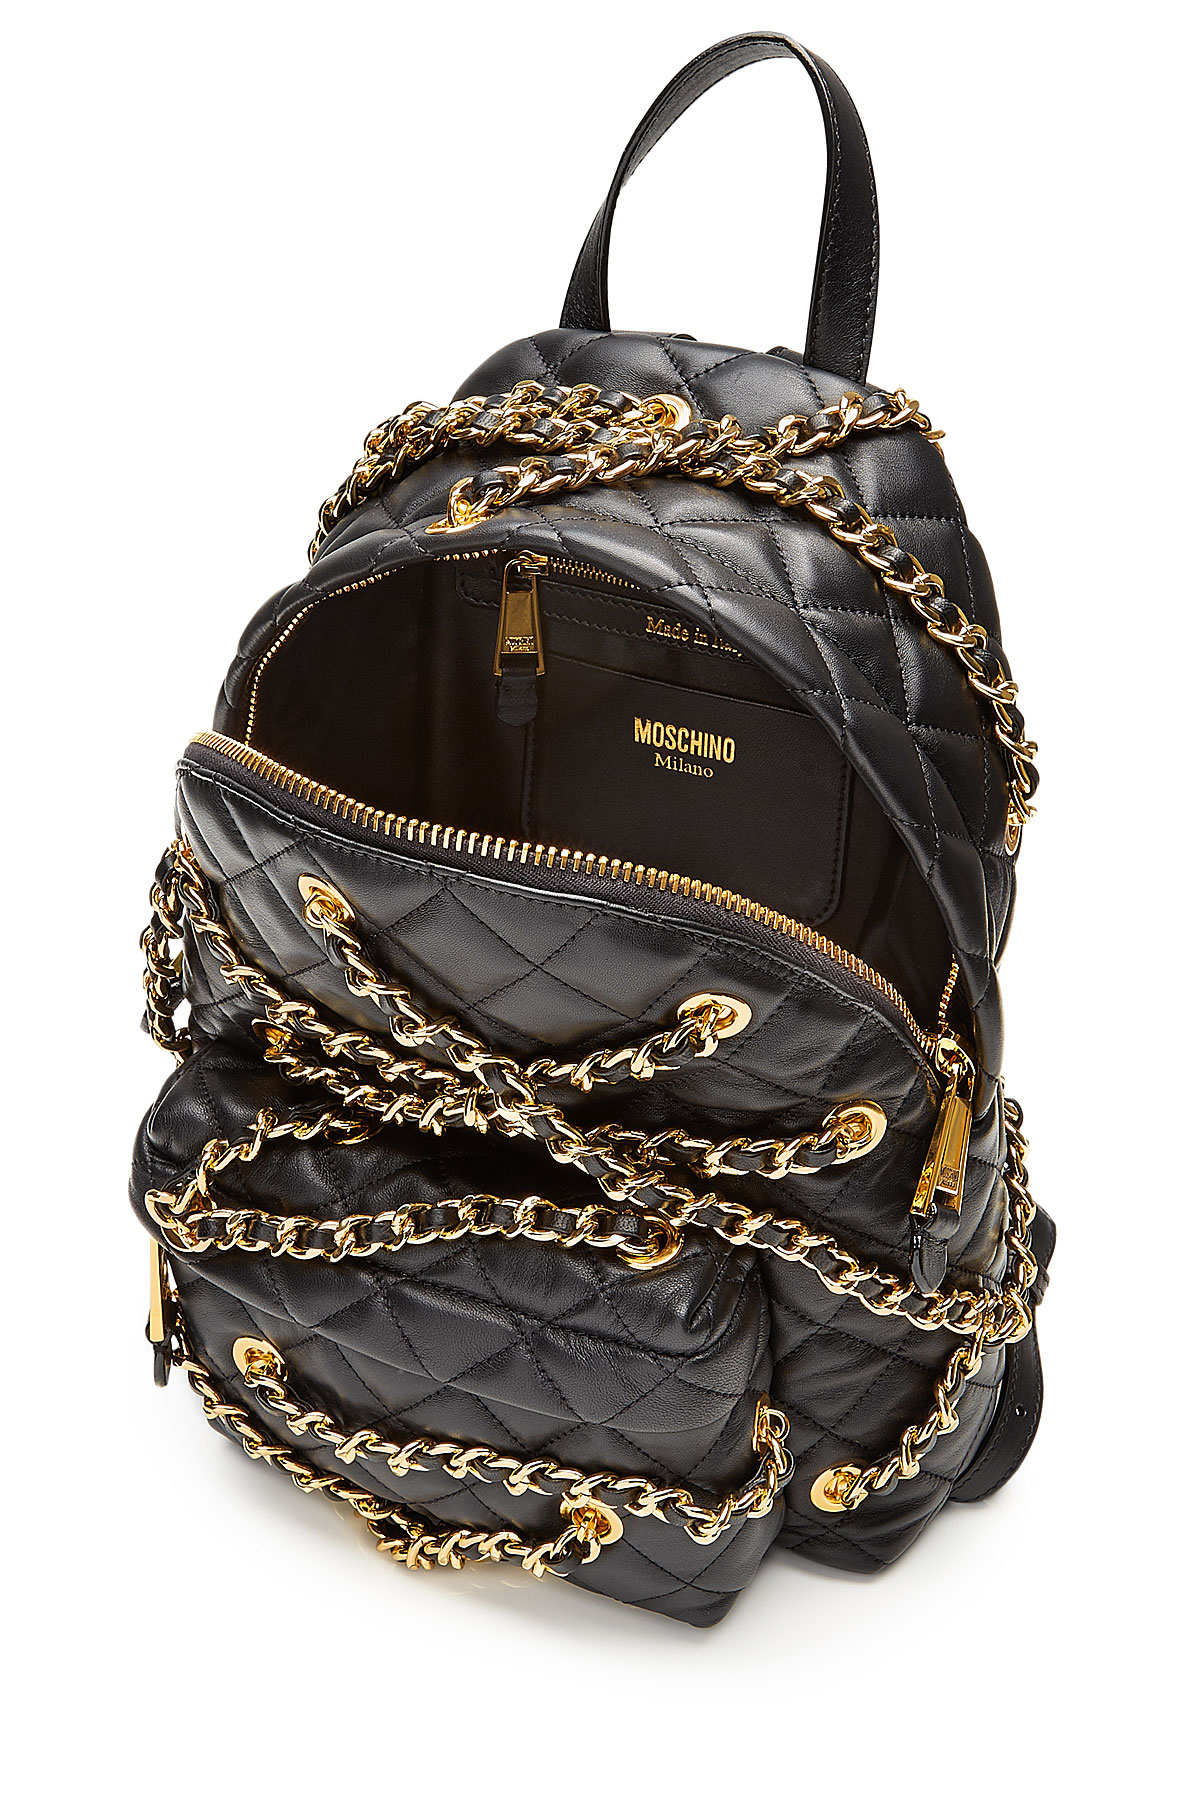 991677cf8a3 Black Leather Backpack With Gold Chain- Fenix Toulouse Handball